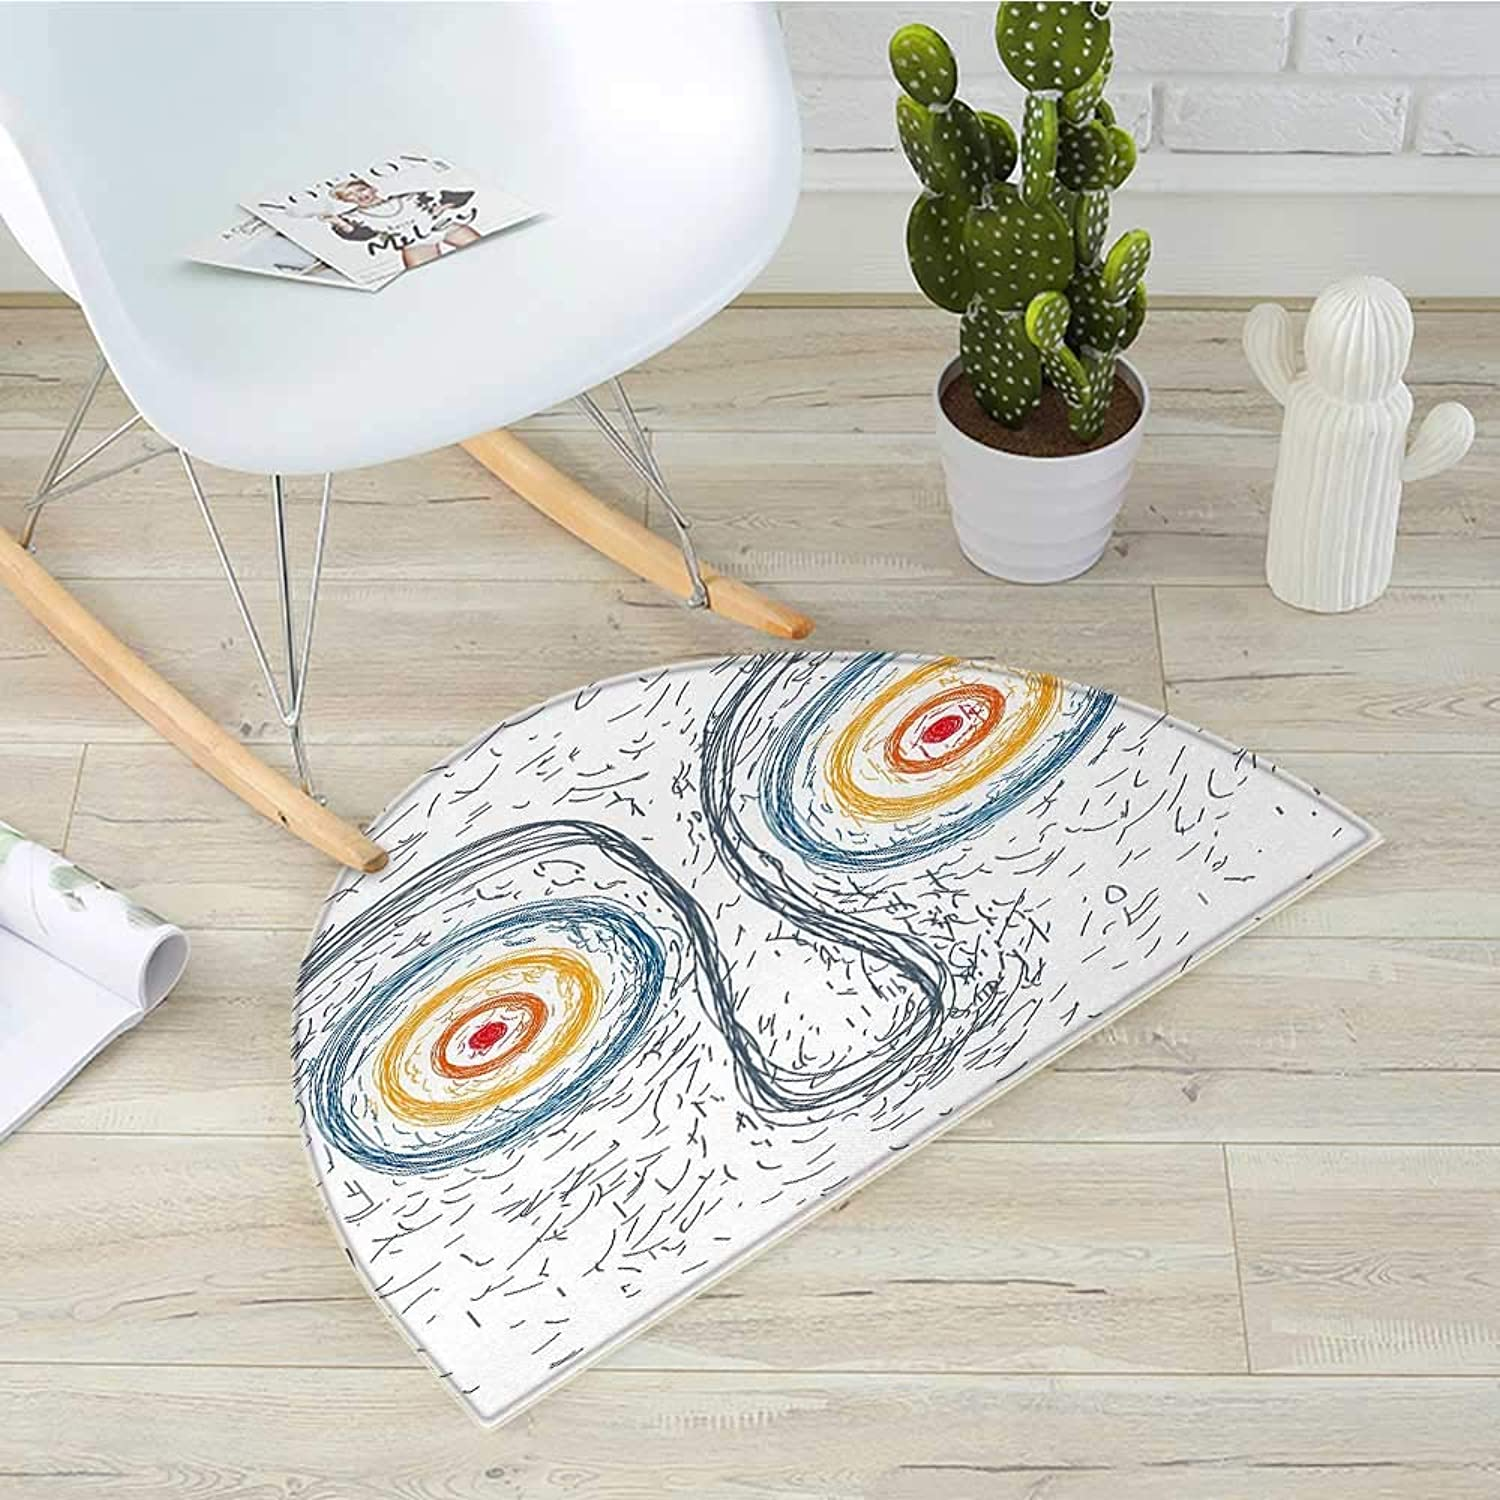 Psychedelic Half Round Door mats Confused Man Portrait Human Face with Large Hypnotic Eyes Trance Hand Drawn Bathroom Mat H 39.3  xD 59  Multicolor